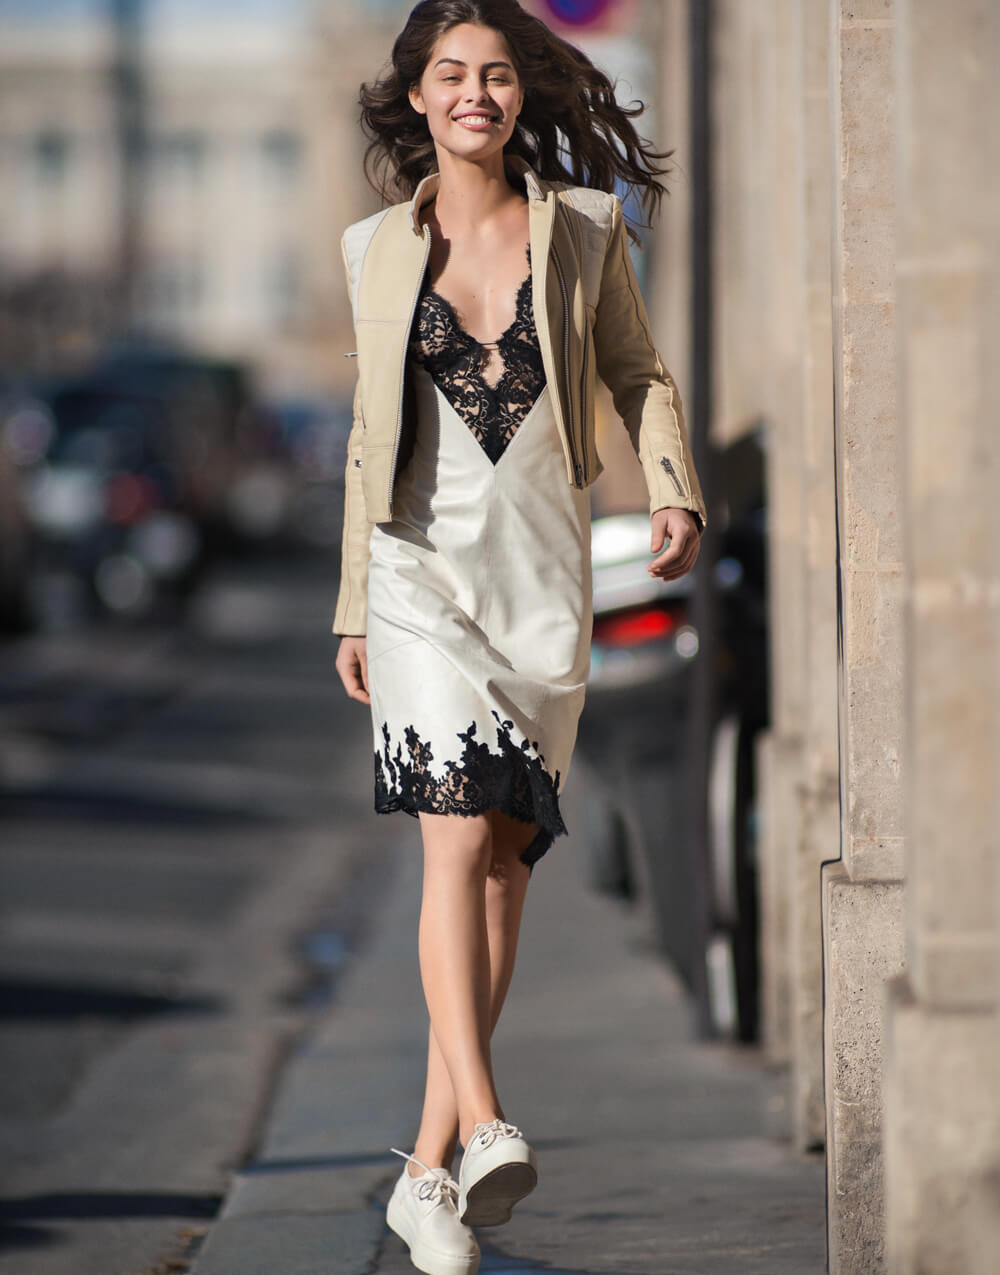 Marie-Ange Casta hot legs pictures